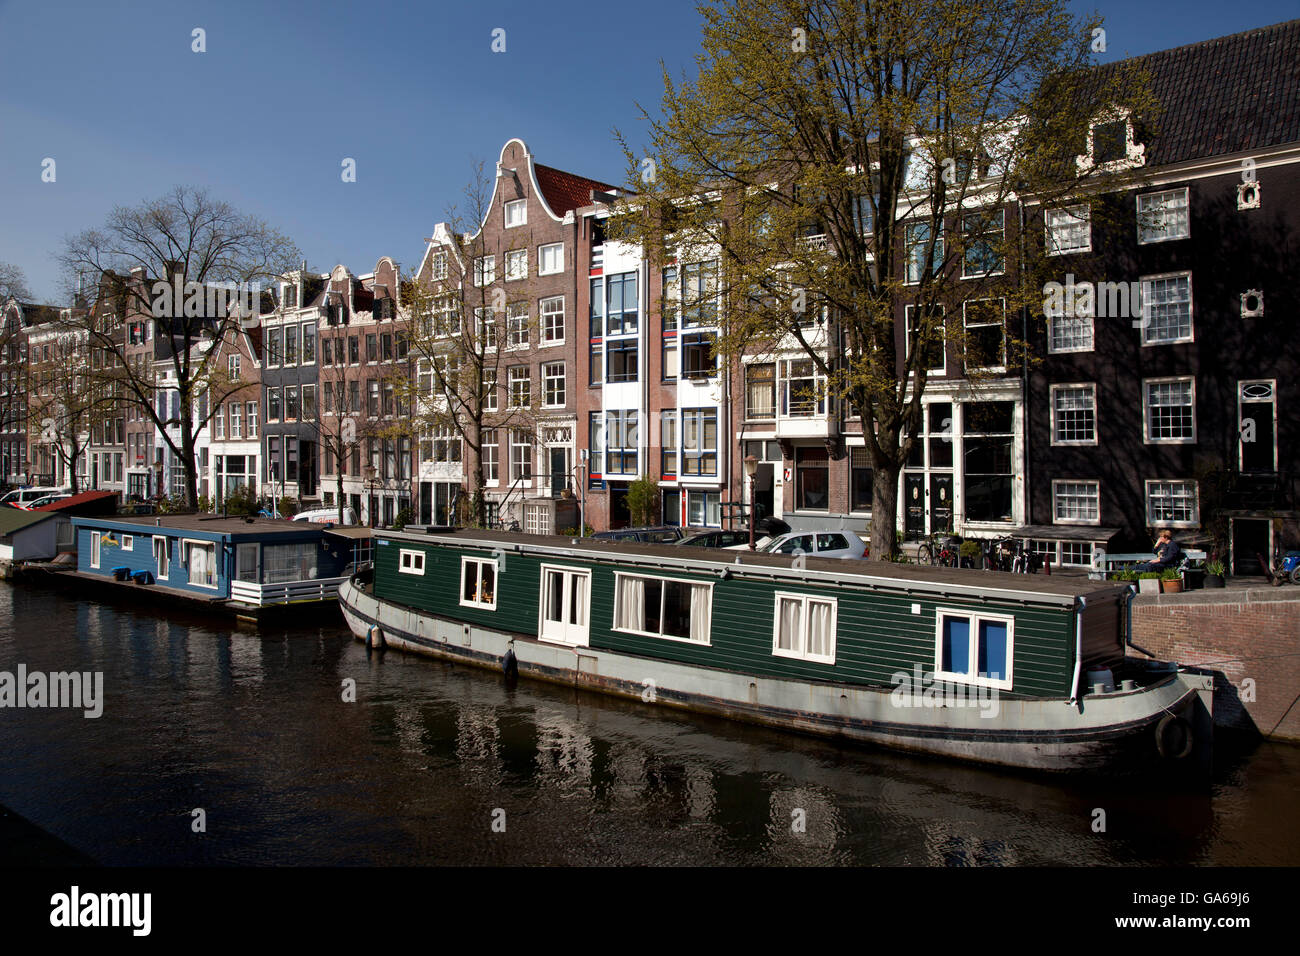 Houseboats on the Prinsengracht canal, Amsterdam, The Netherlands, Europe - Stock Image